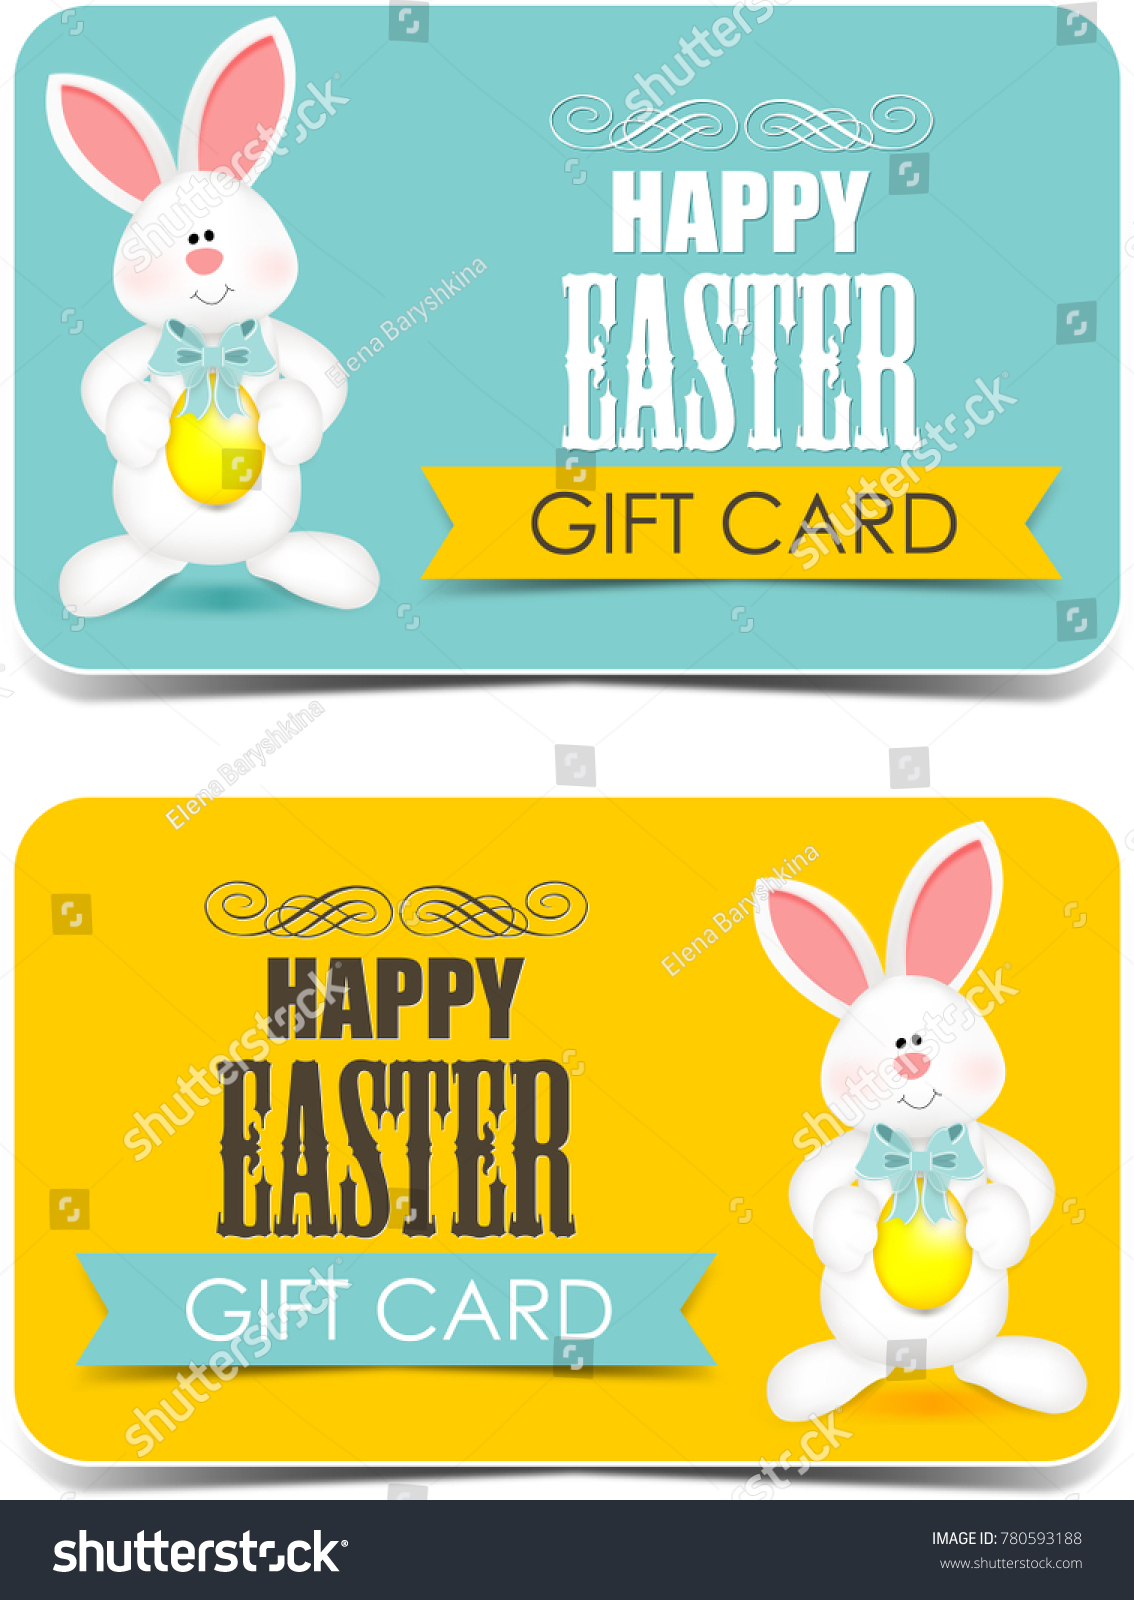 Happy easter gift cards cute bunny stock illustration 780593188 happy easter gift cards cute bunny negle Choice Image